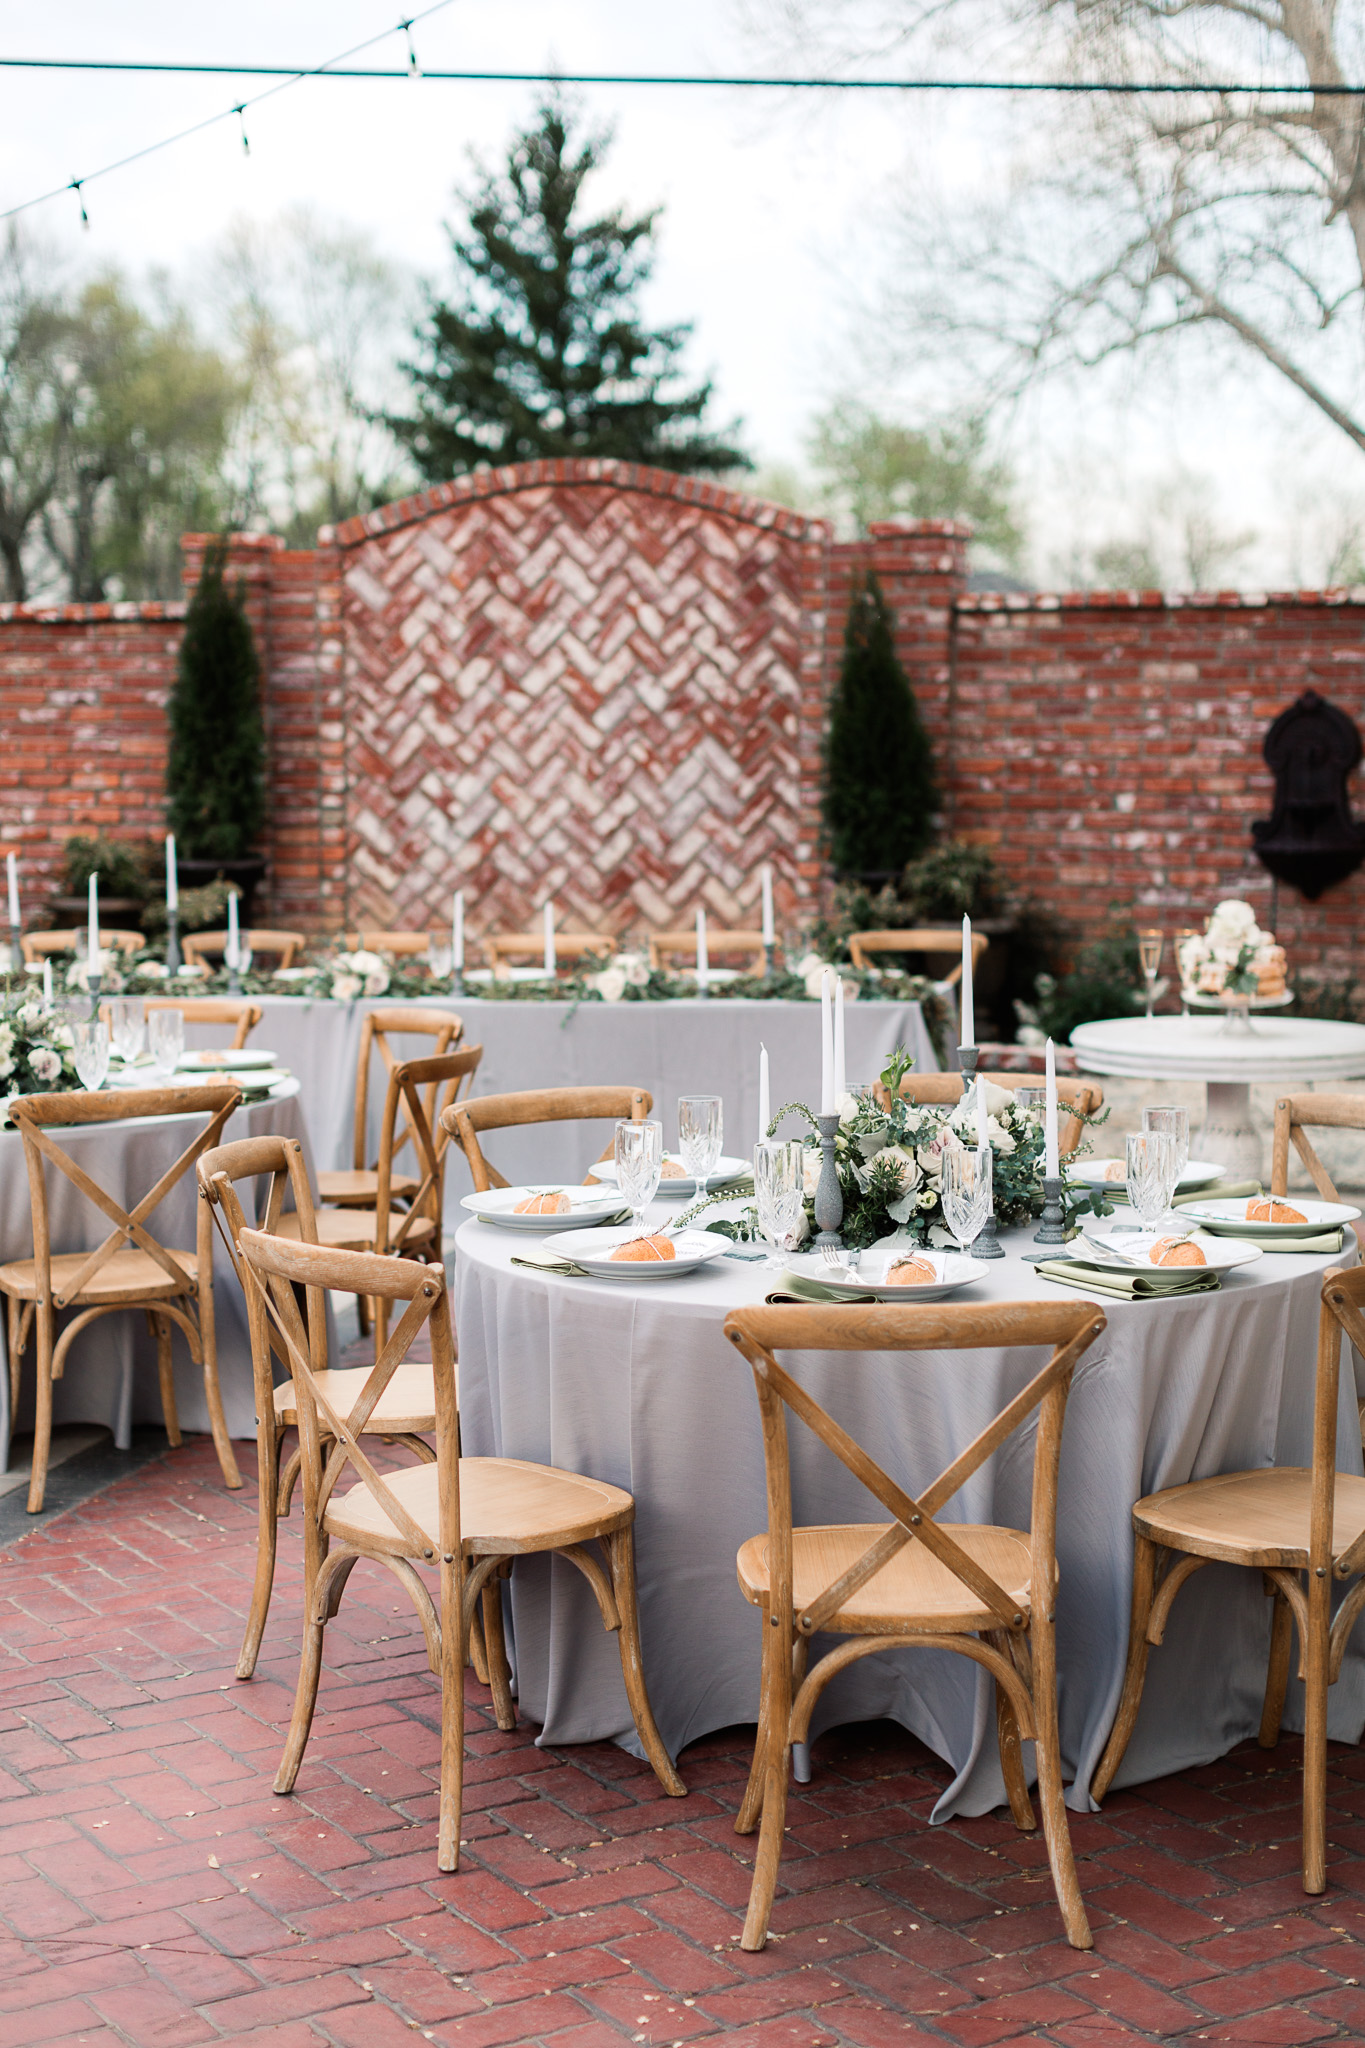 wedding receptions - photo by B.Matthews Creative https://ruffledblog.com/organic-italian-inspired-wedding-ideas